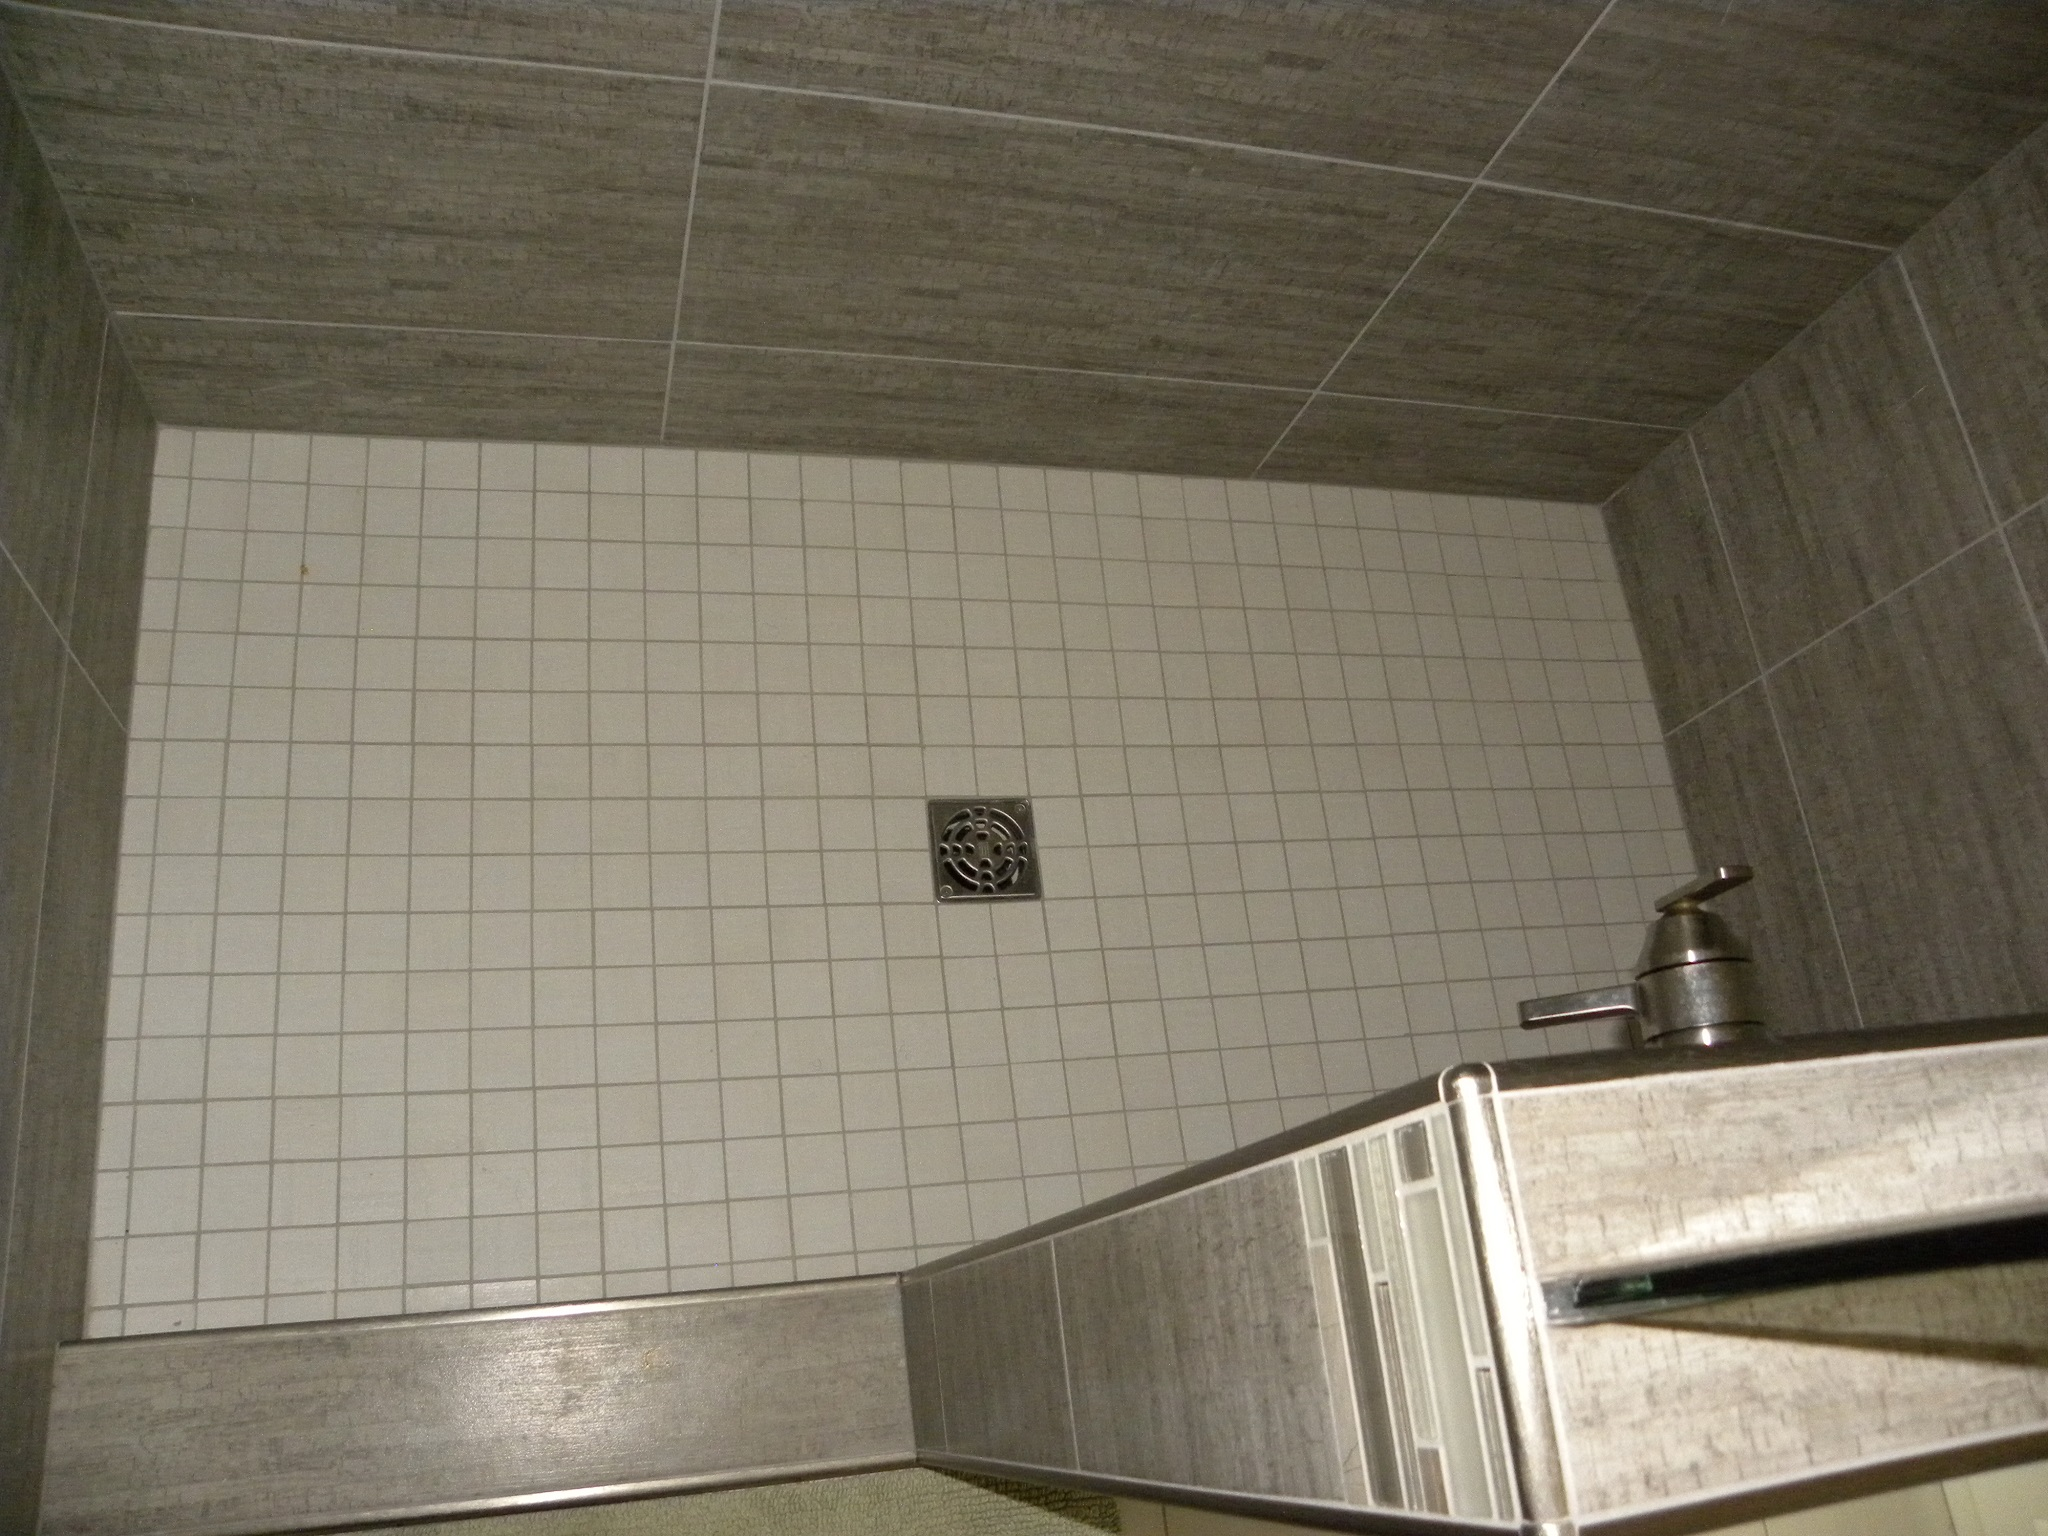 A custom built shower with gray and white tile and a specially designed shower handle